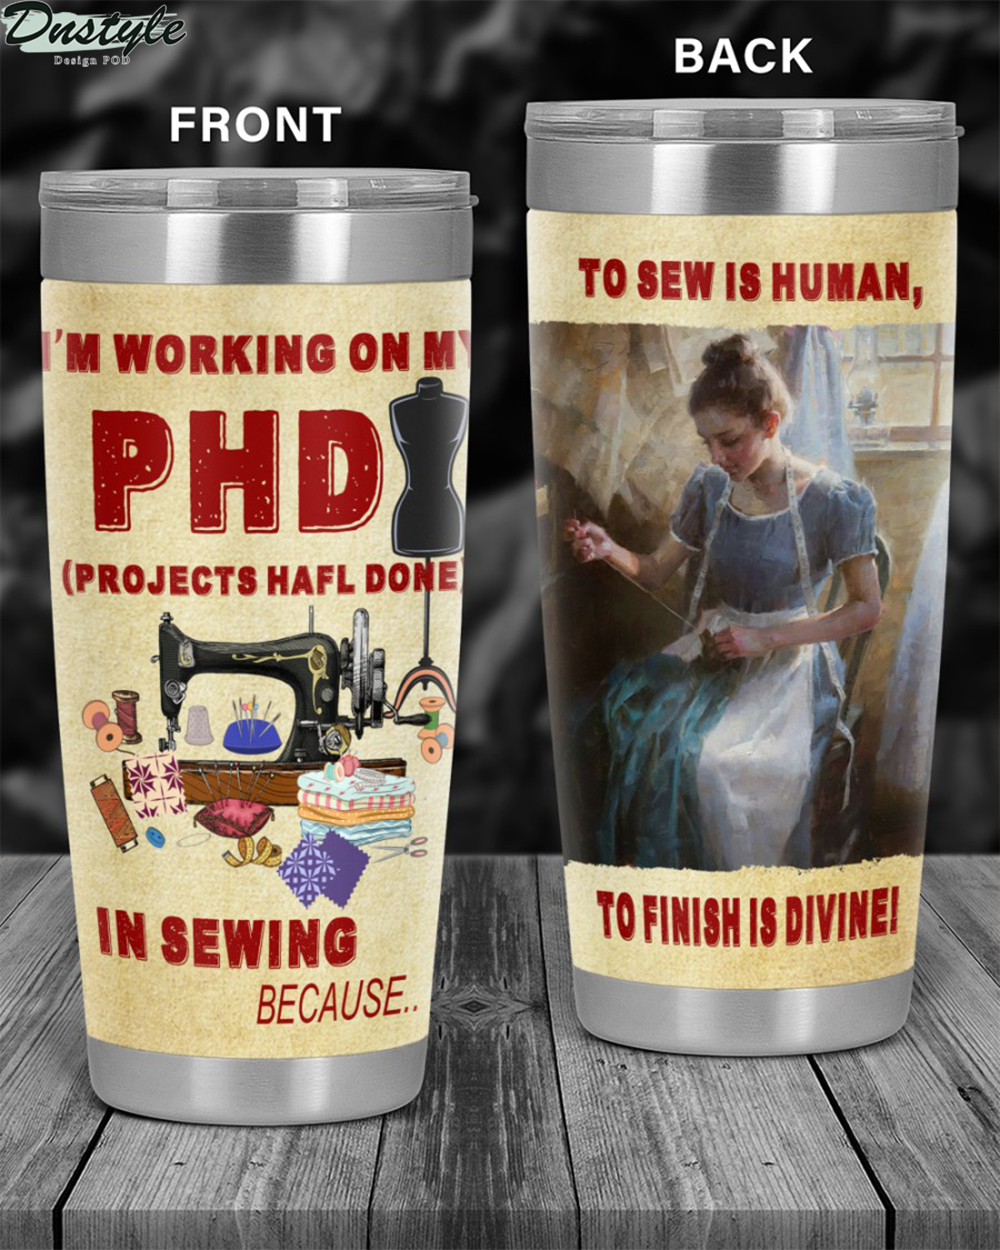 I'm working on my PHD in sewing tumbler 2